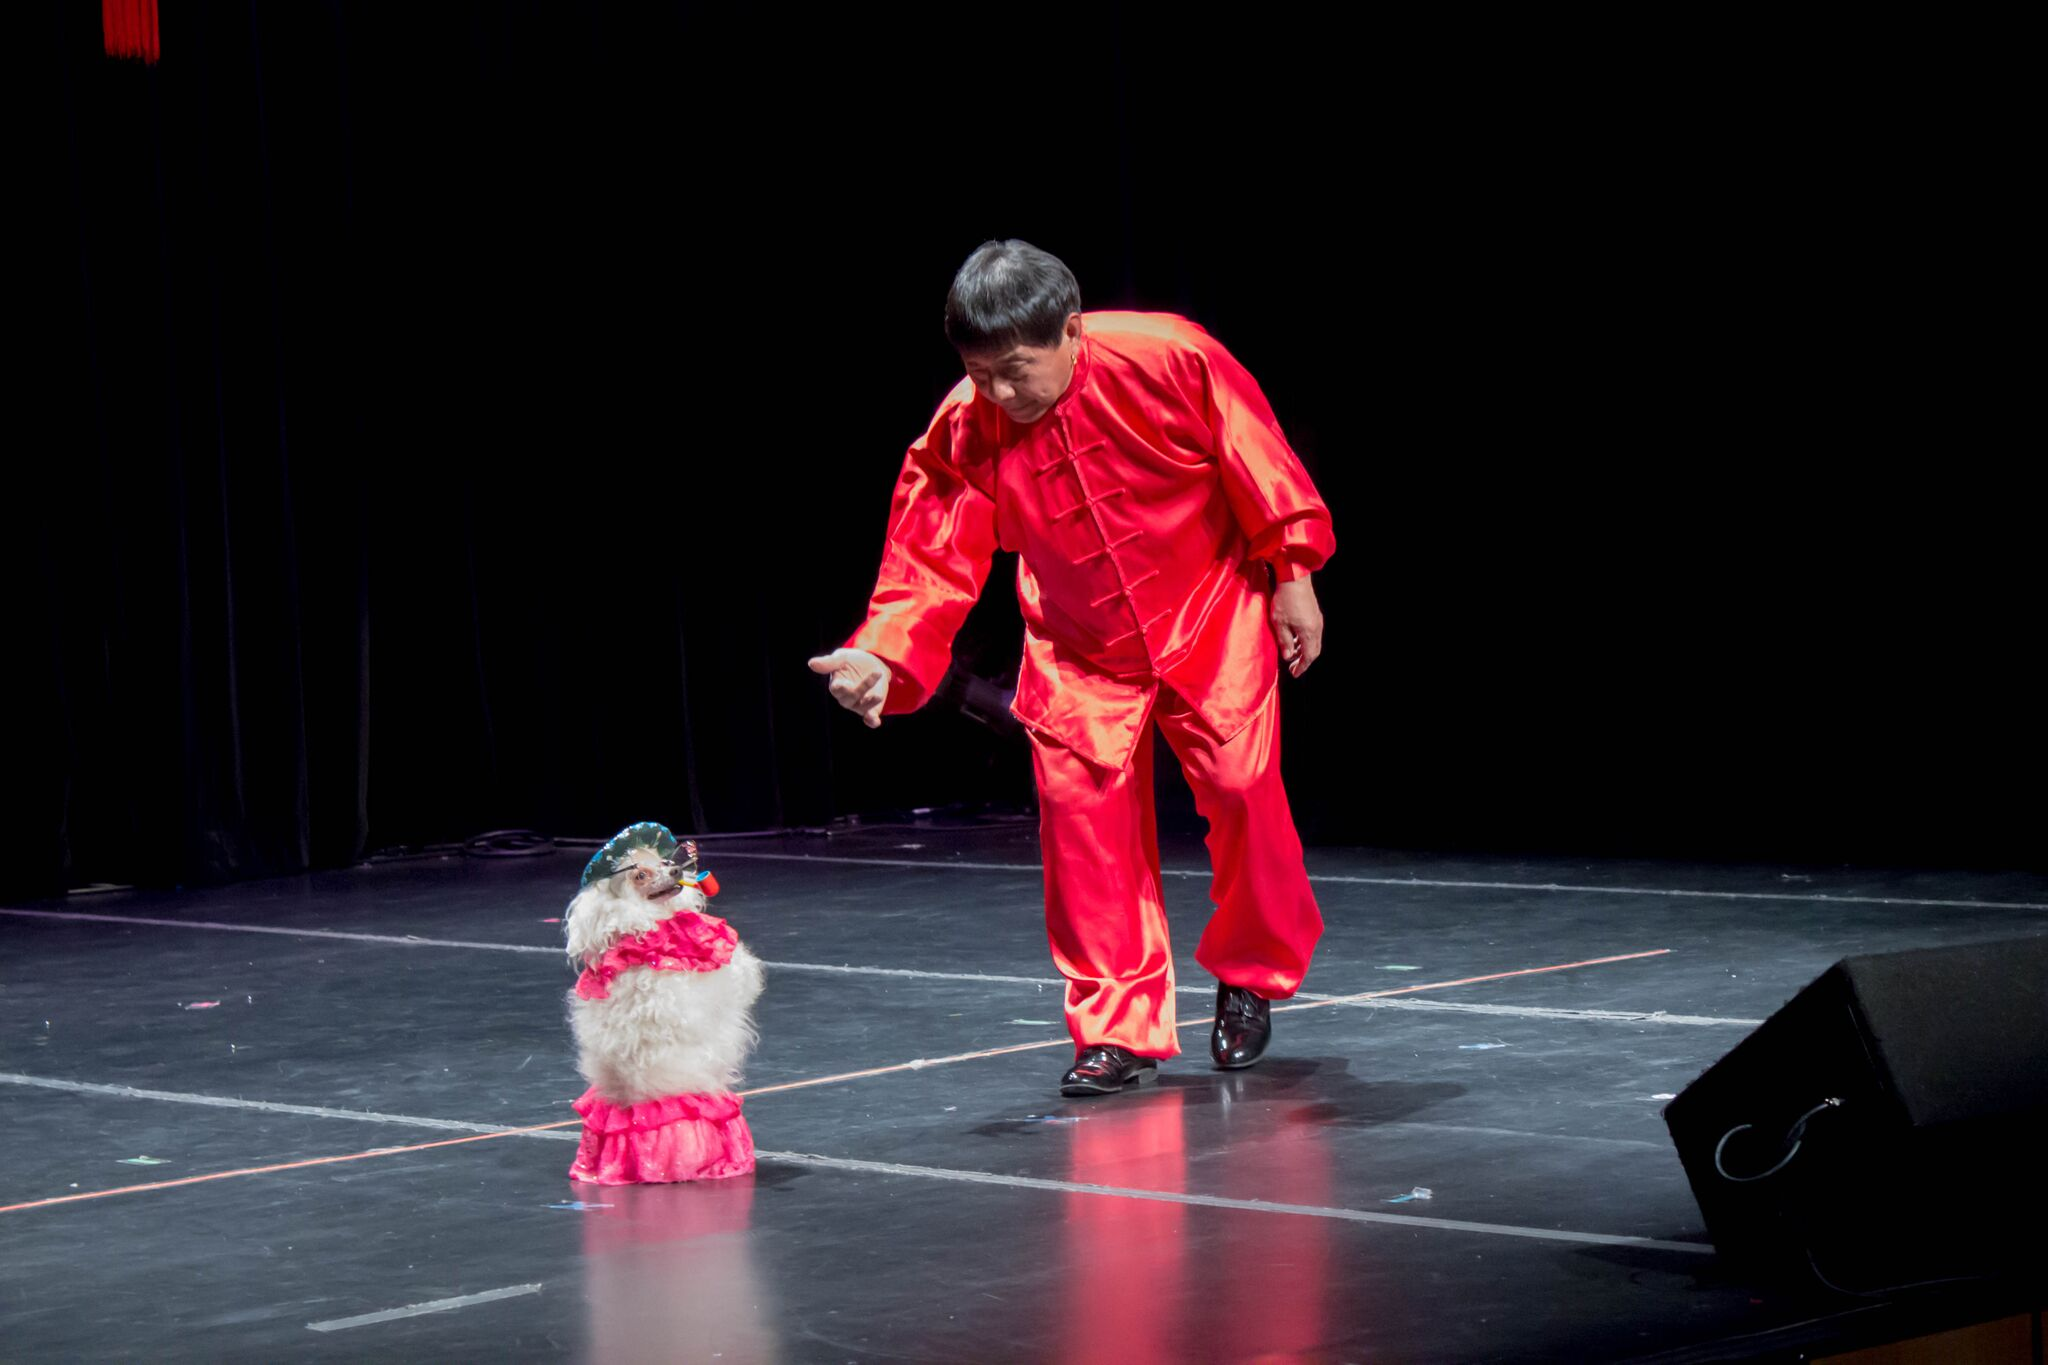 A dog trainer performed a show with his poodle, Hua Hua the Dancing Dog. Hua Hua exhibited multiple skits, including walking on two paws, and jumping through hoops the trainer held.  MANJU SHIVACHARAN/ THE STATESMAN